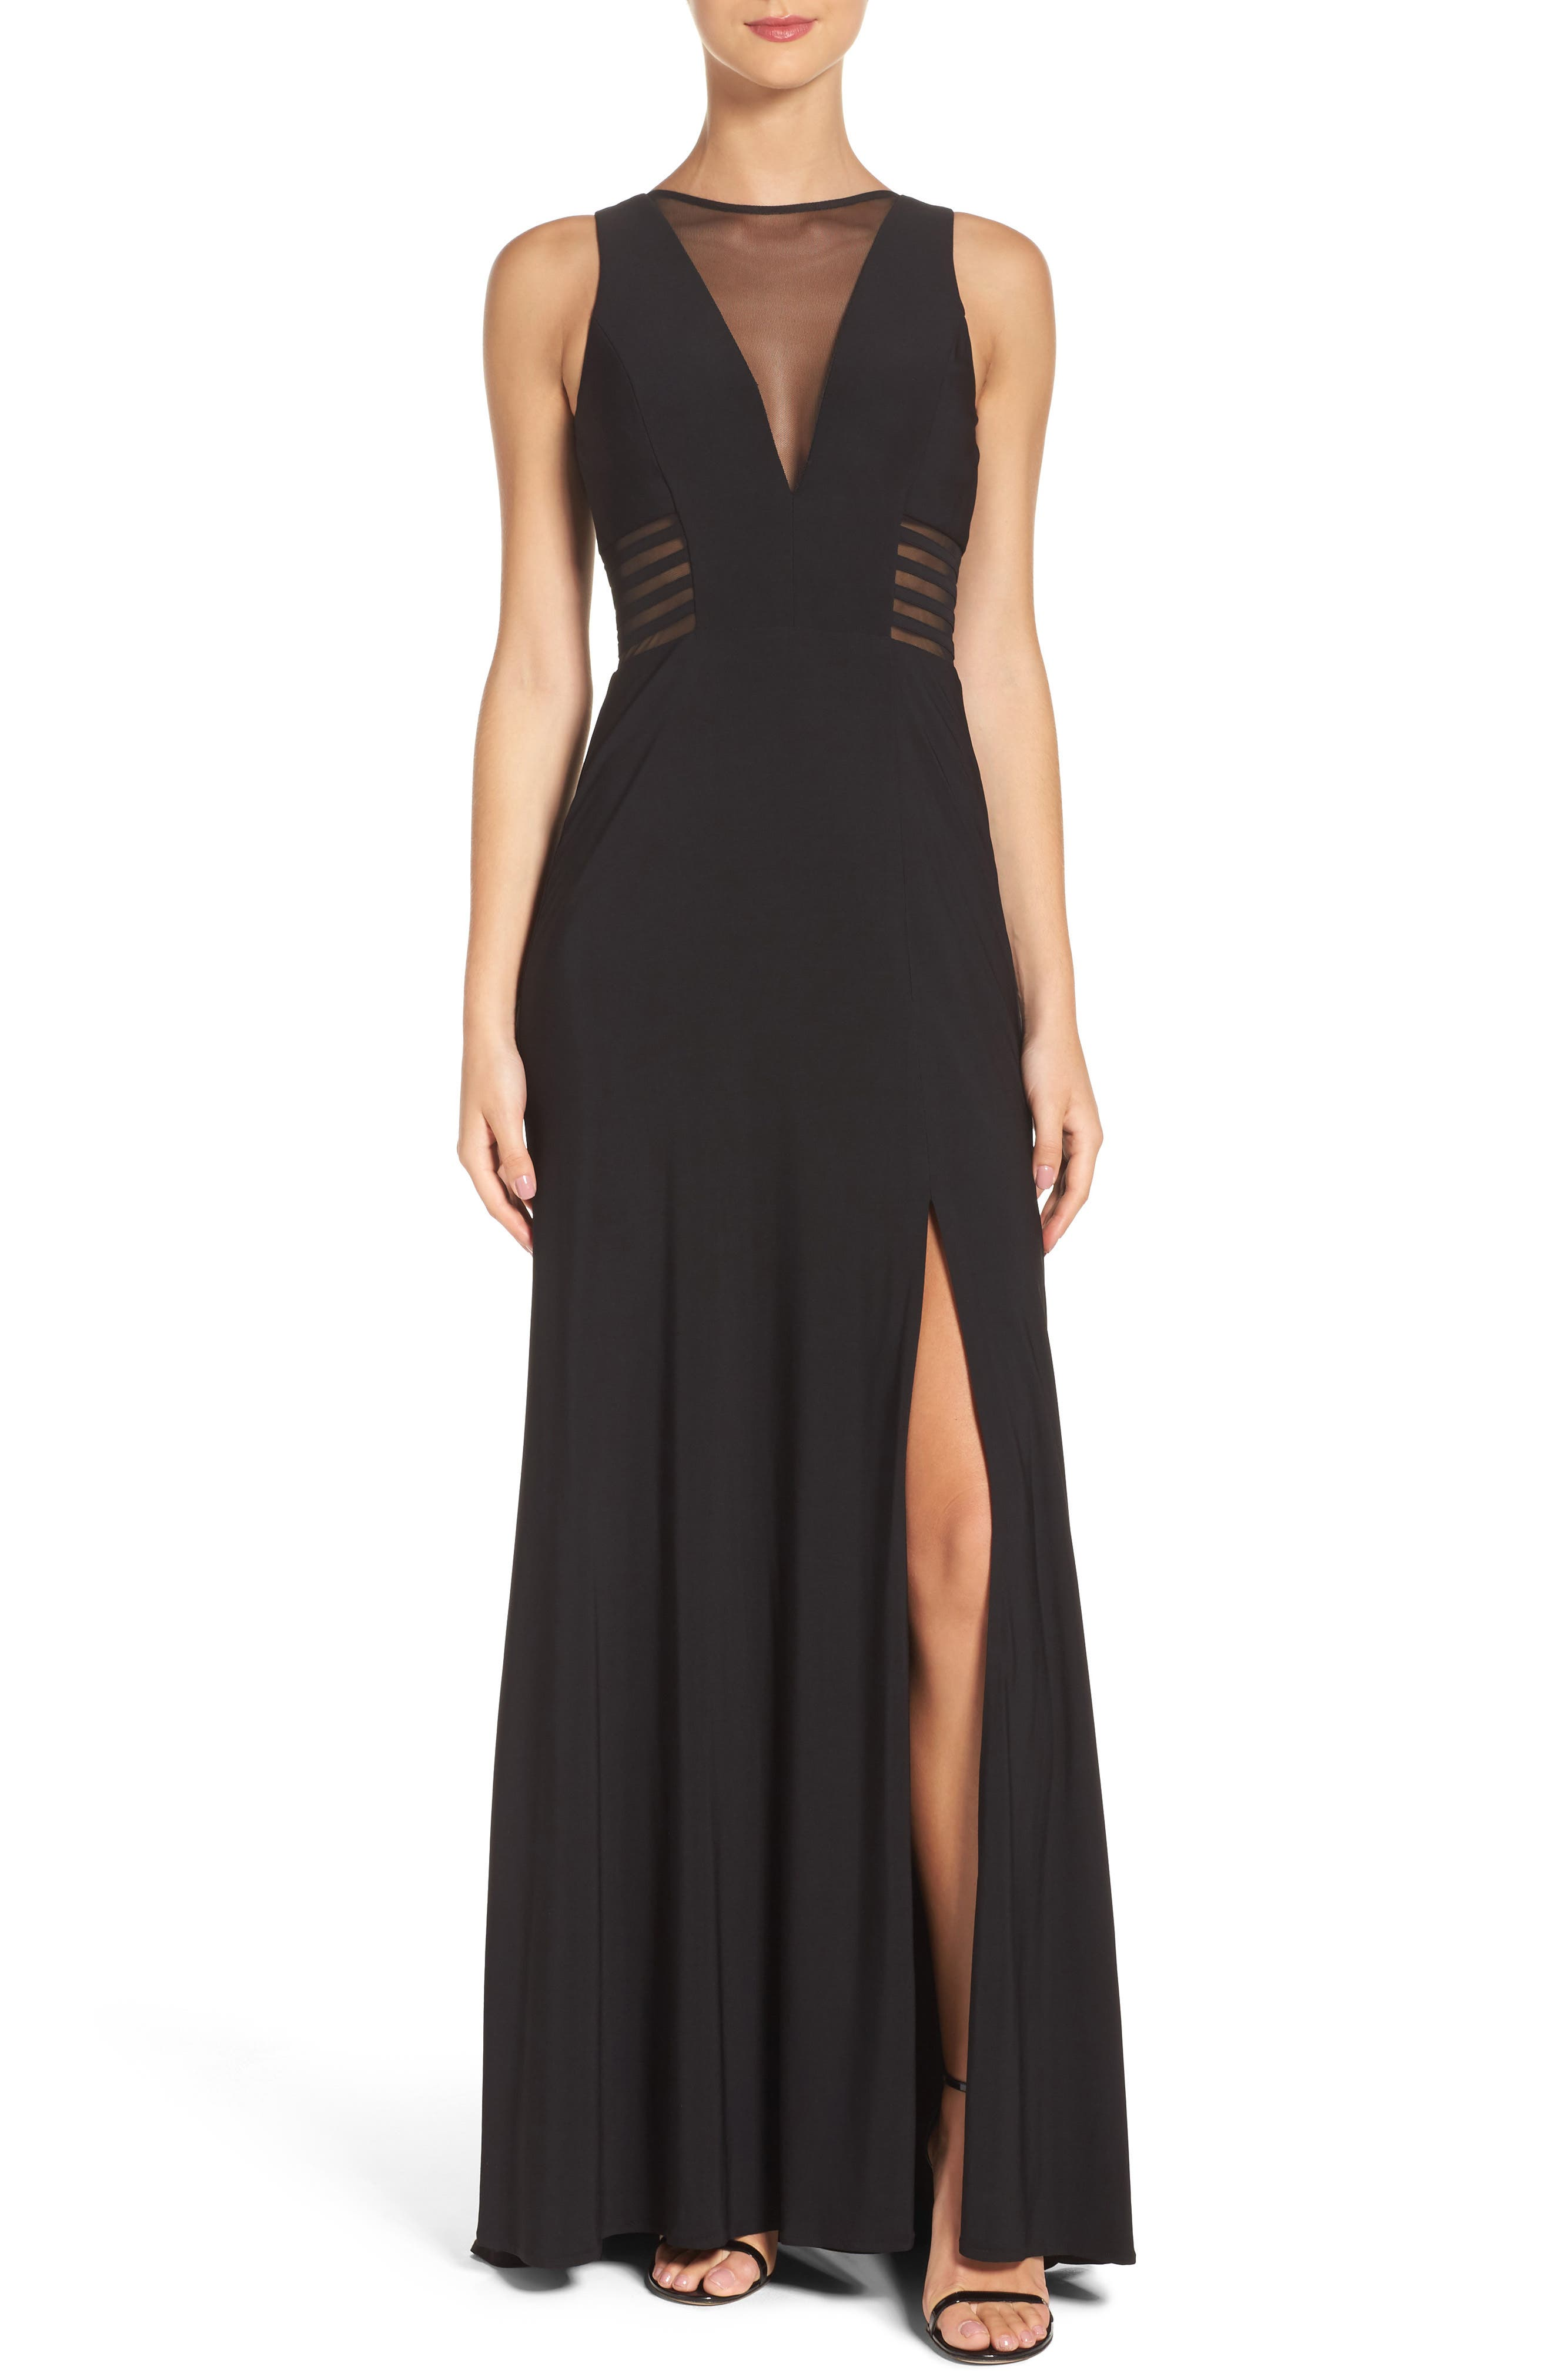 MORGAN & CO. Illusion Gown, Main, color, BLACK